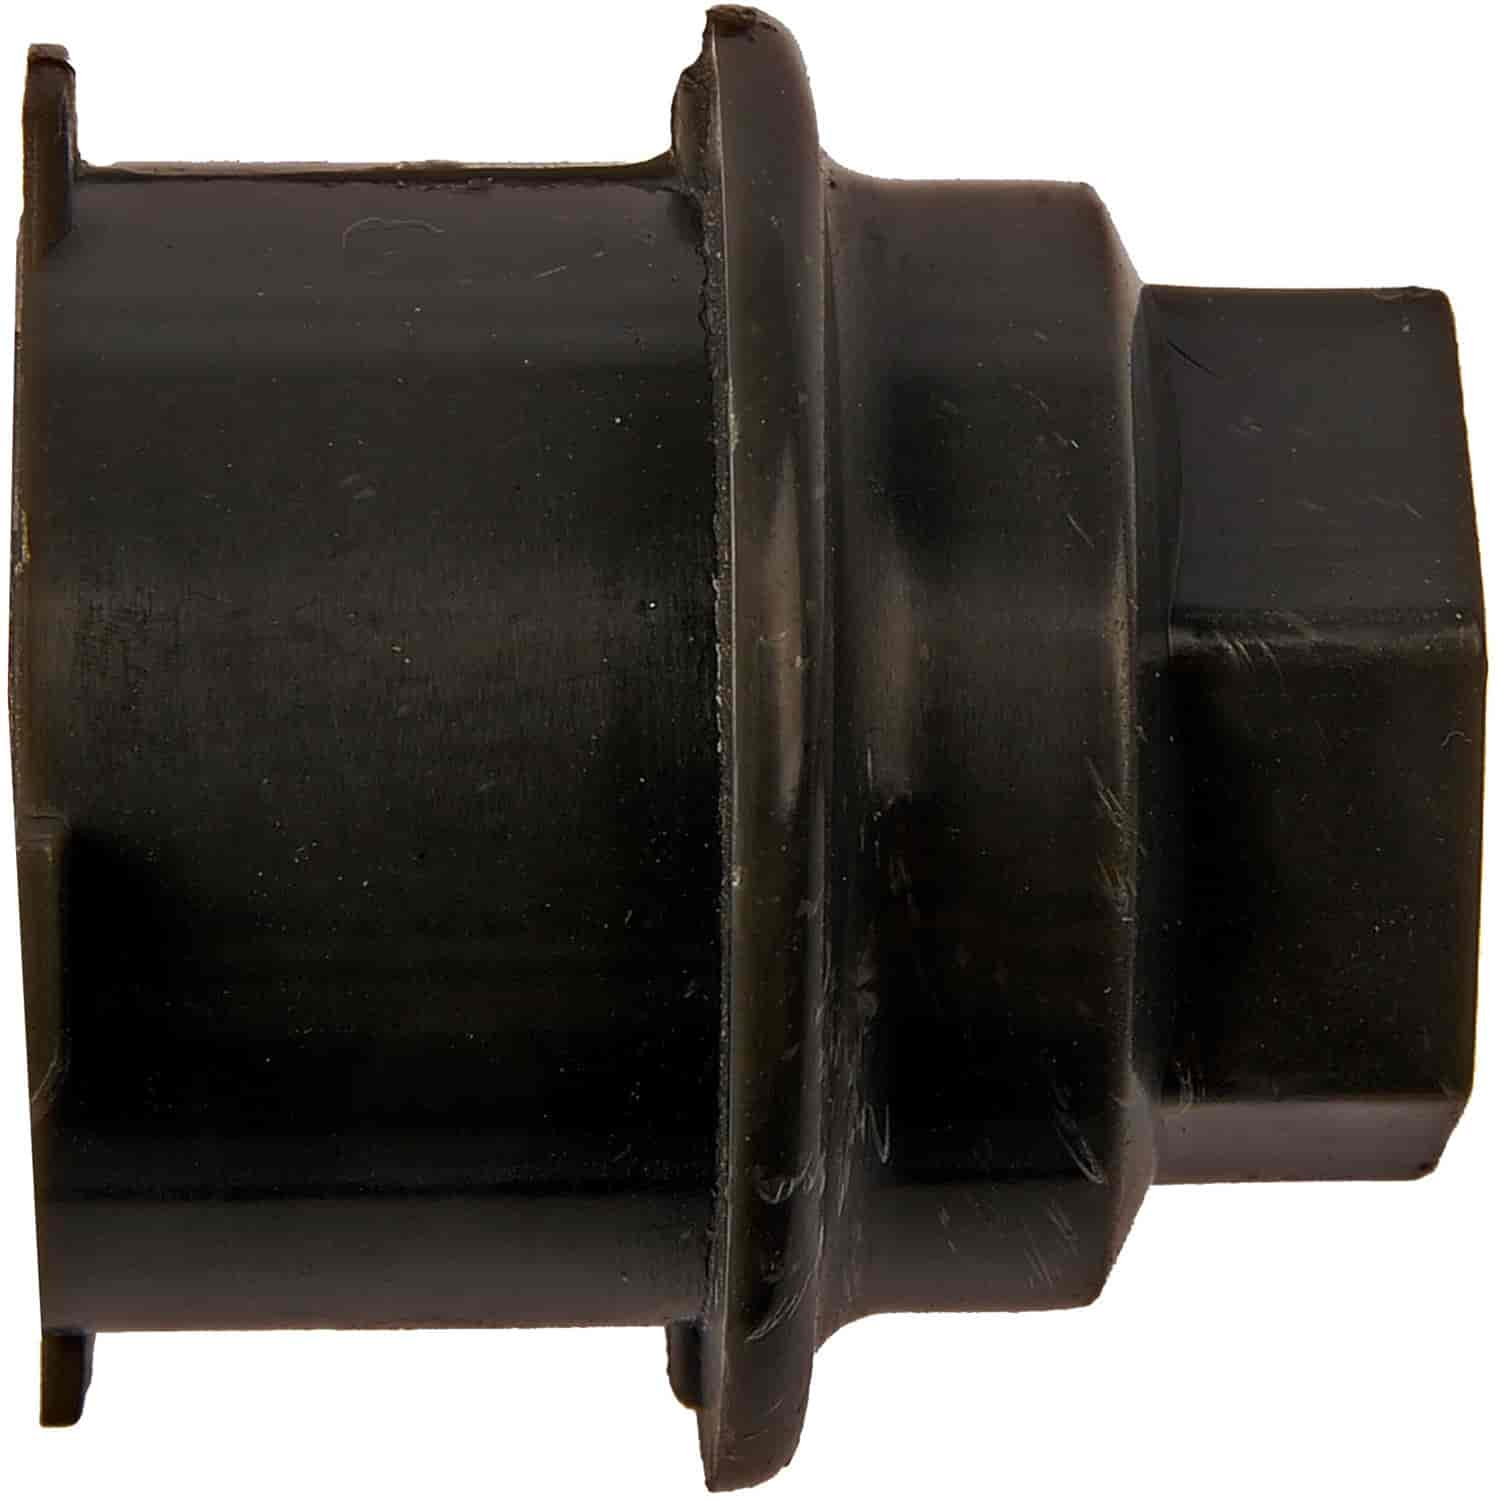 Dorman Products 611-624.1